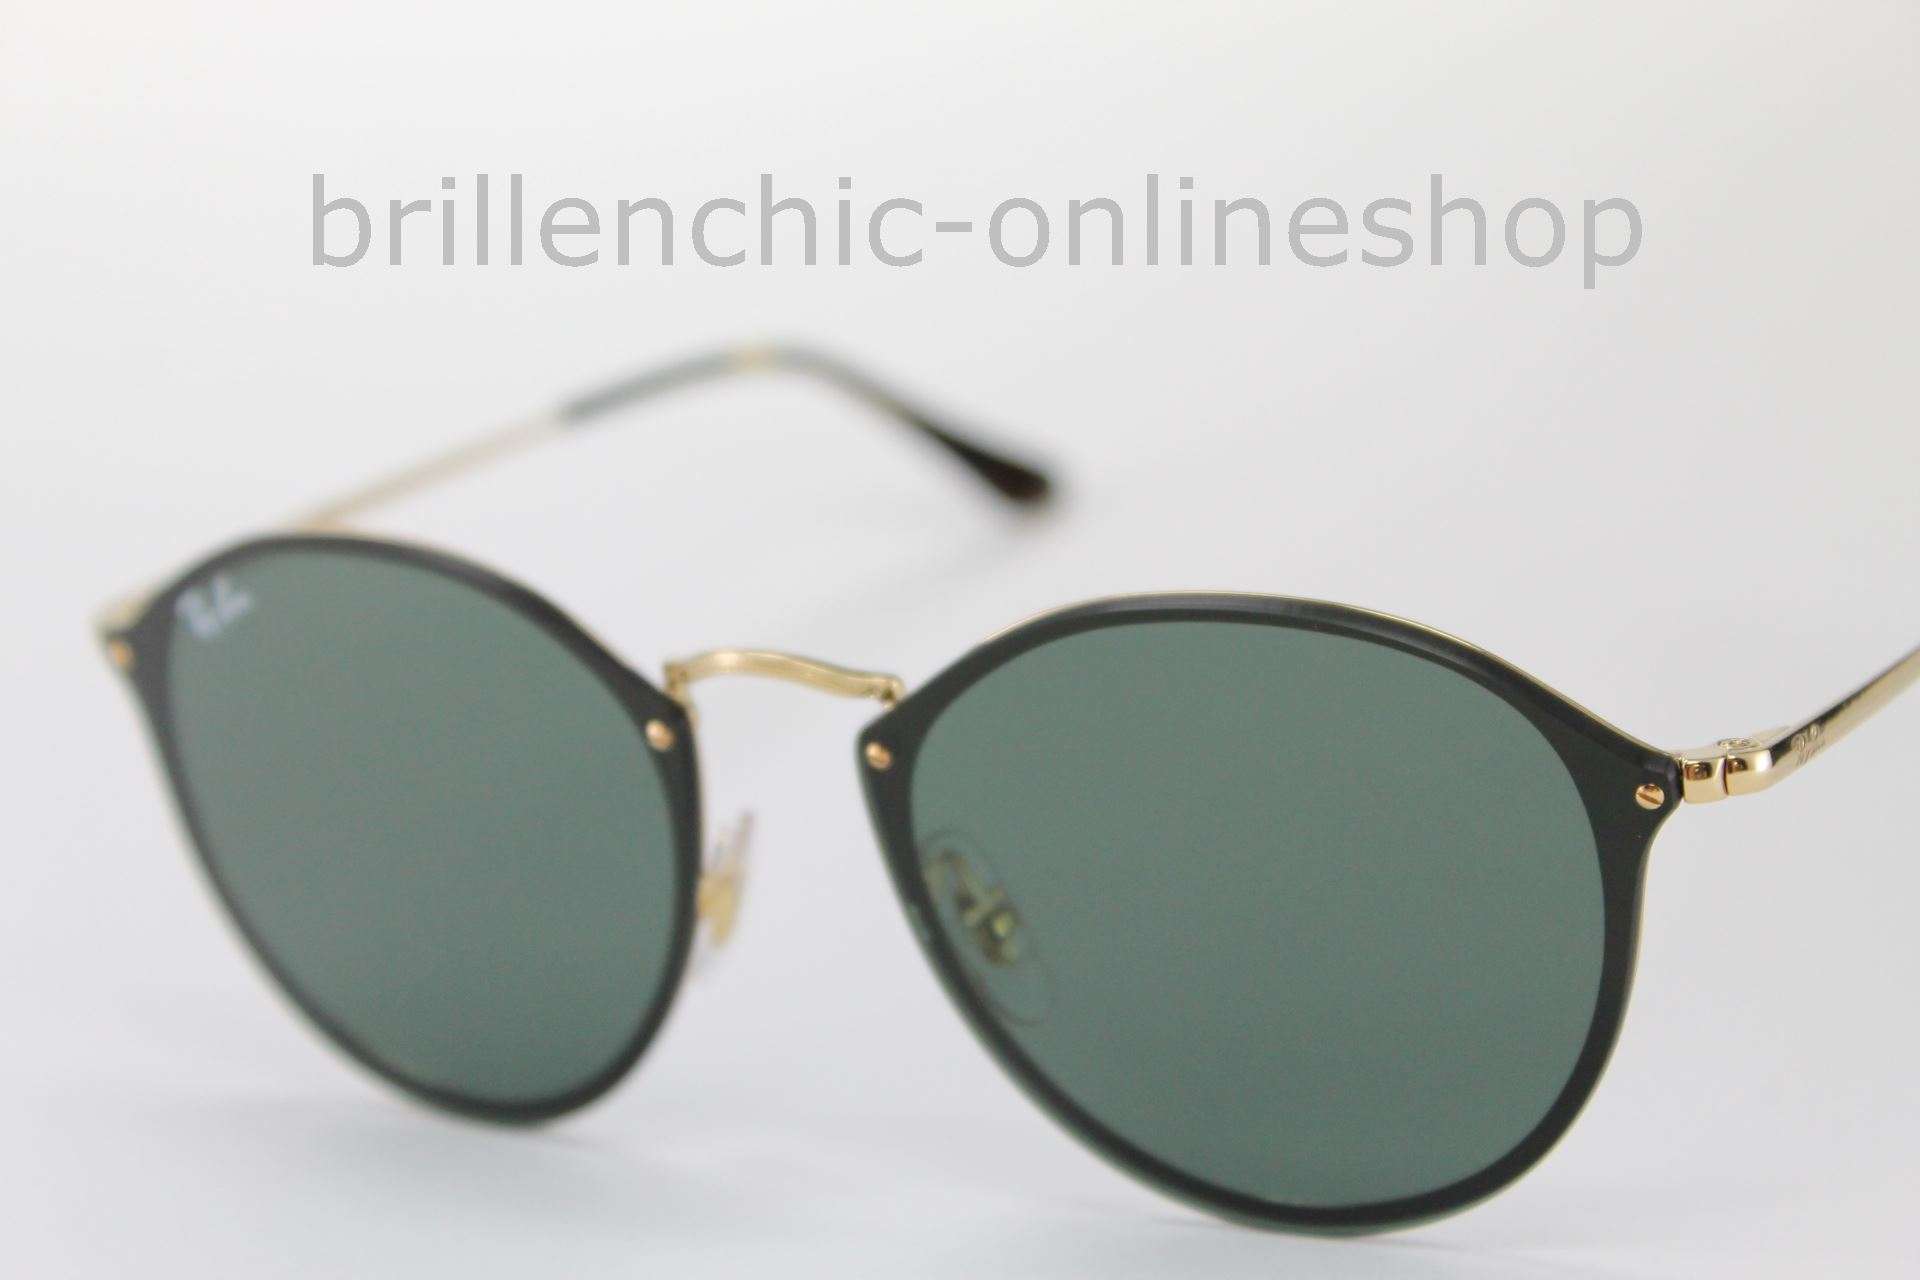 Brillenchic-onlineshop in Berlin - Ray Ban BLAZE ROUND RB 3574N 3574 ... a7a804929d